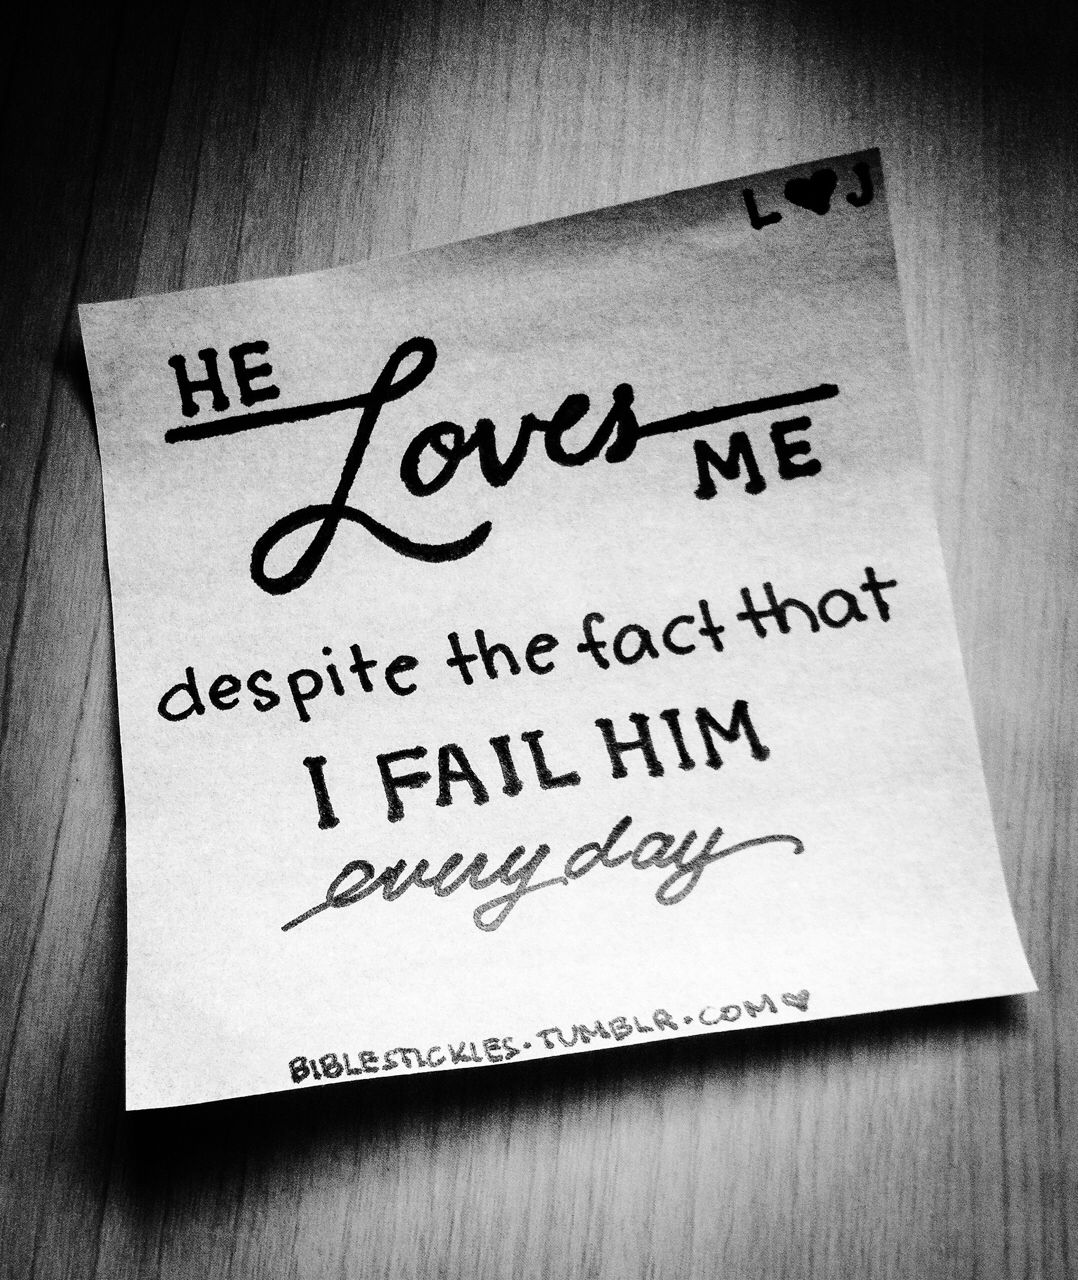 Inspiring Quotes From The Bible: He Loves Me Despite The Fact That I Fail Him Everyday